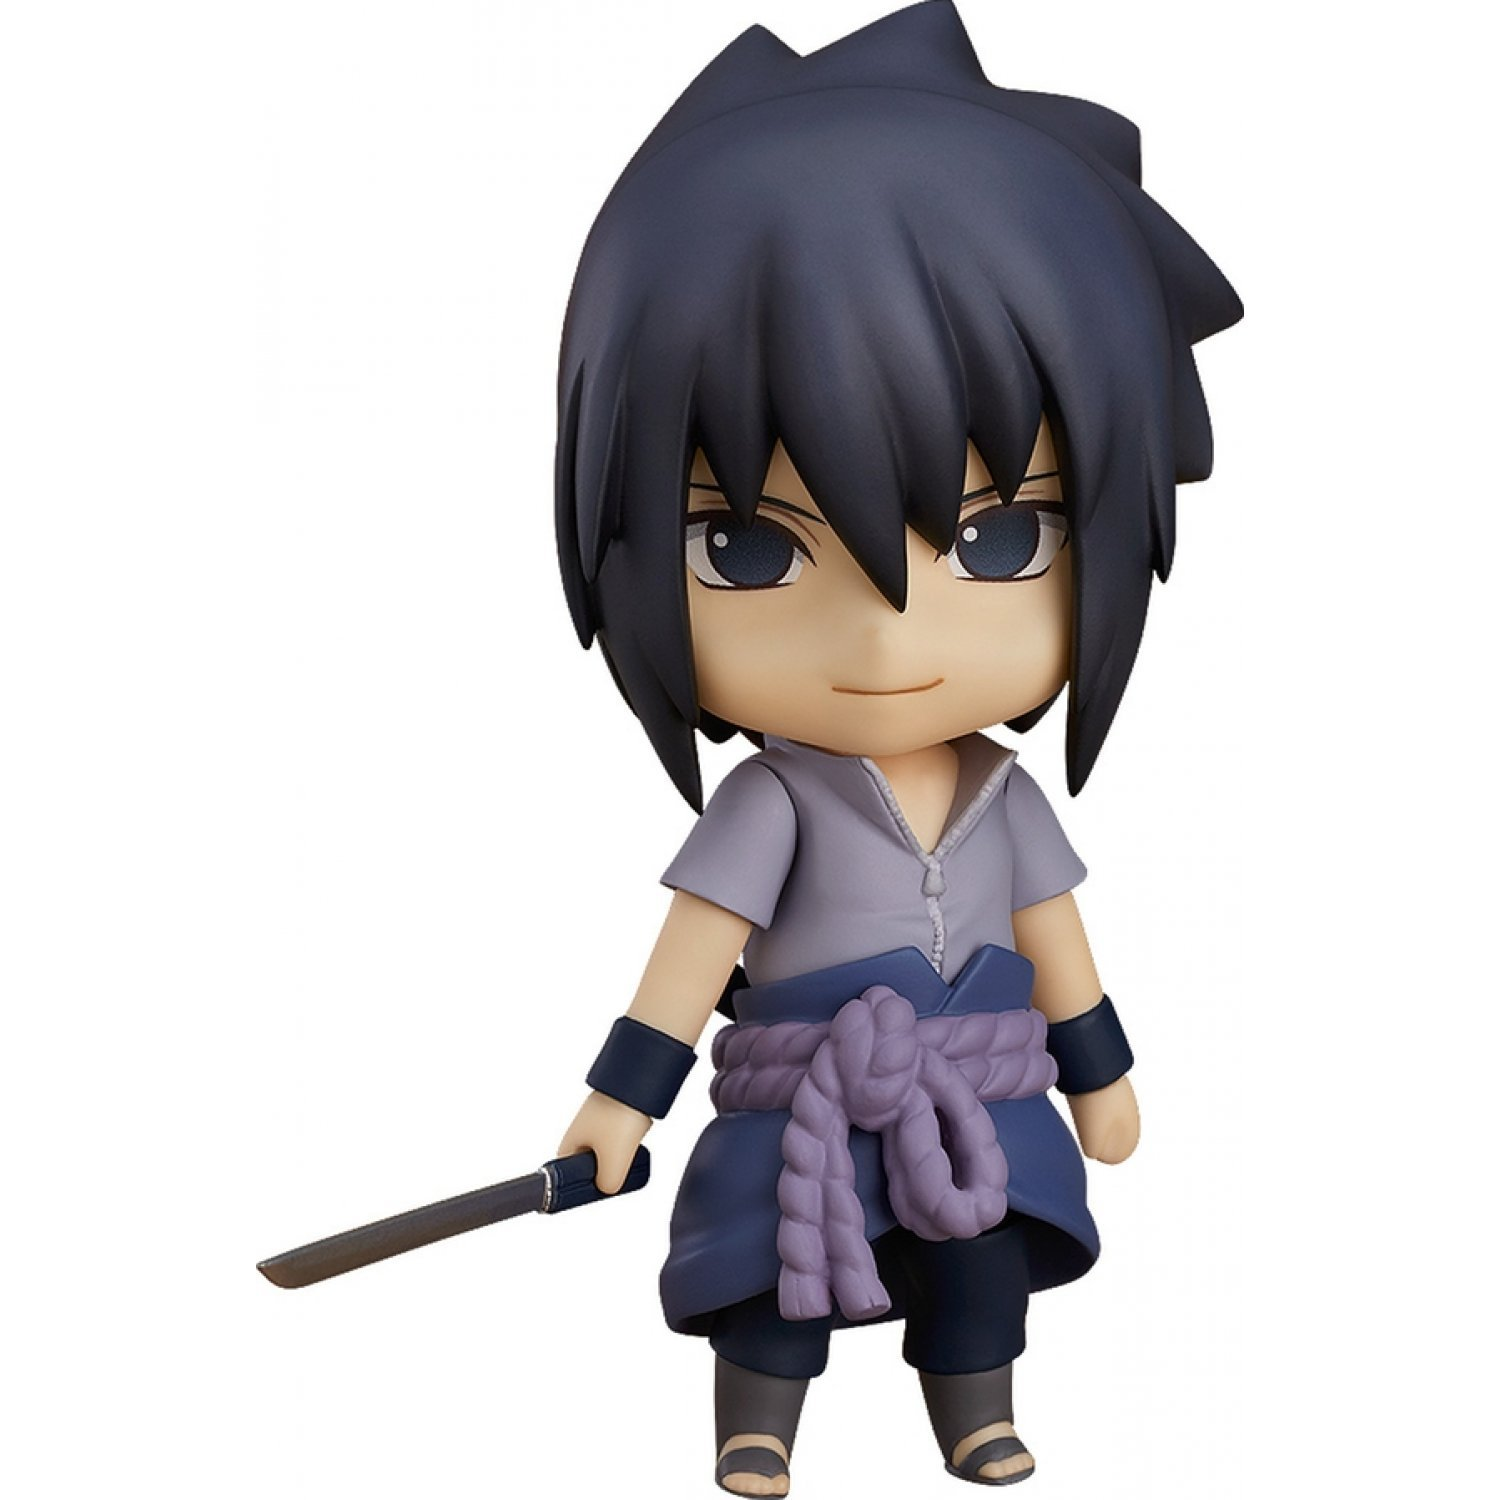 Anime News New Naruto Anime Movie Featuring Naruto S: Nendoroid No. 707 Naruto Shippuden: Sasuke Uchiha